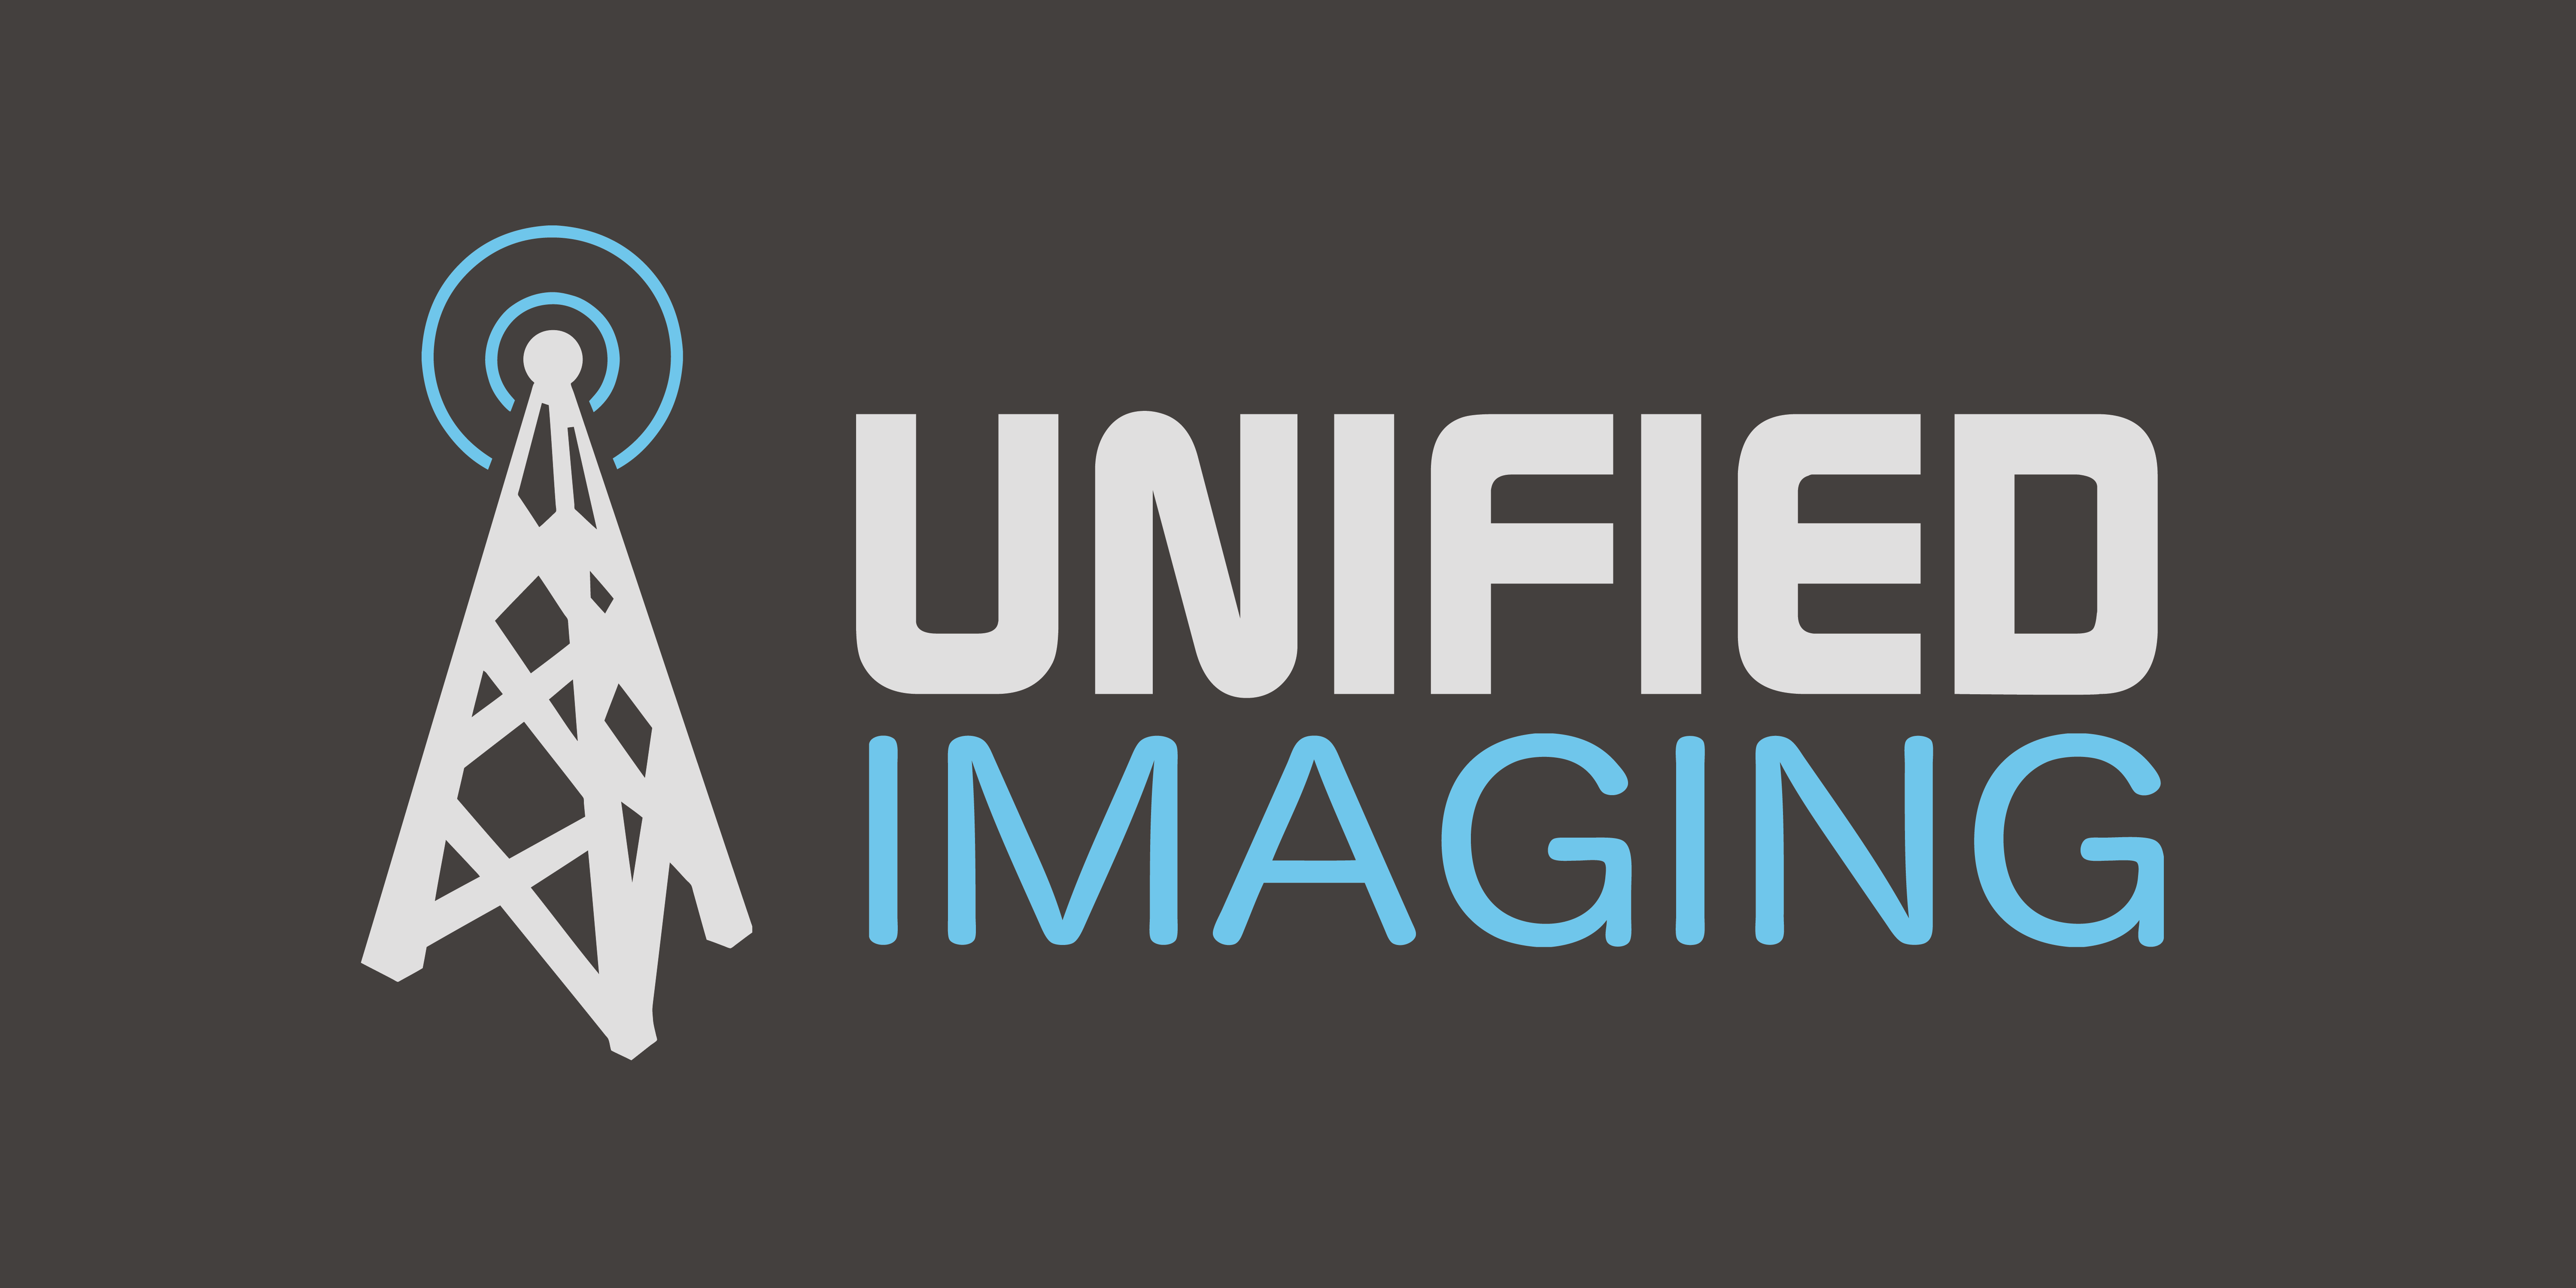 Unified Imaging Support Help Center home page